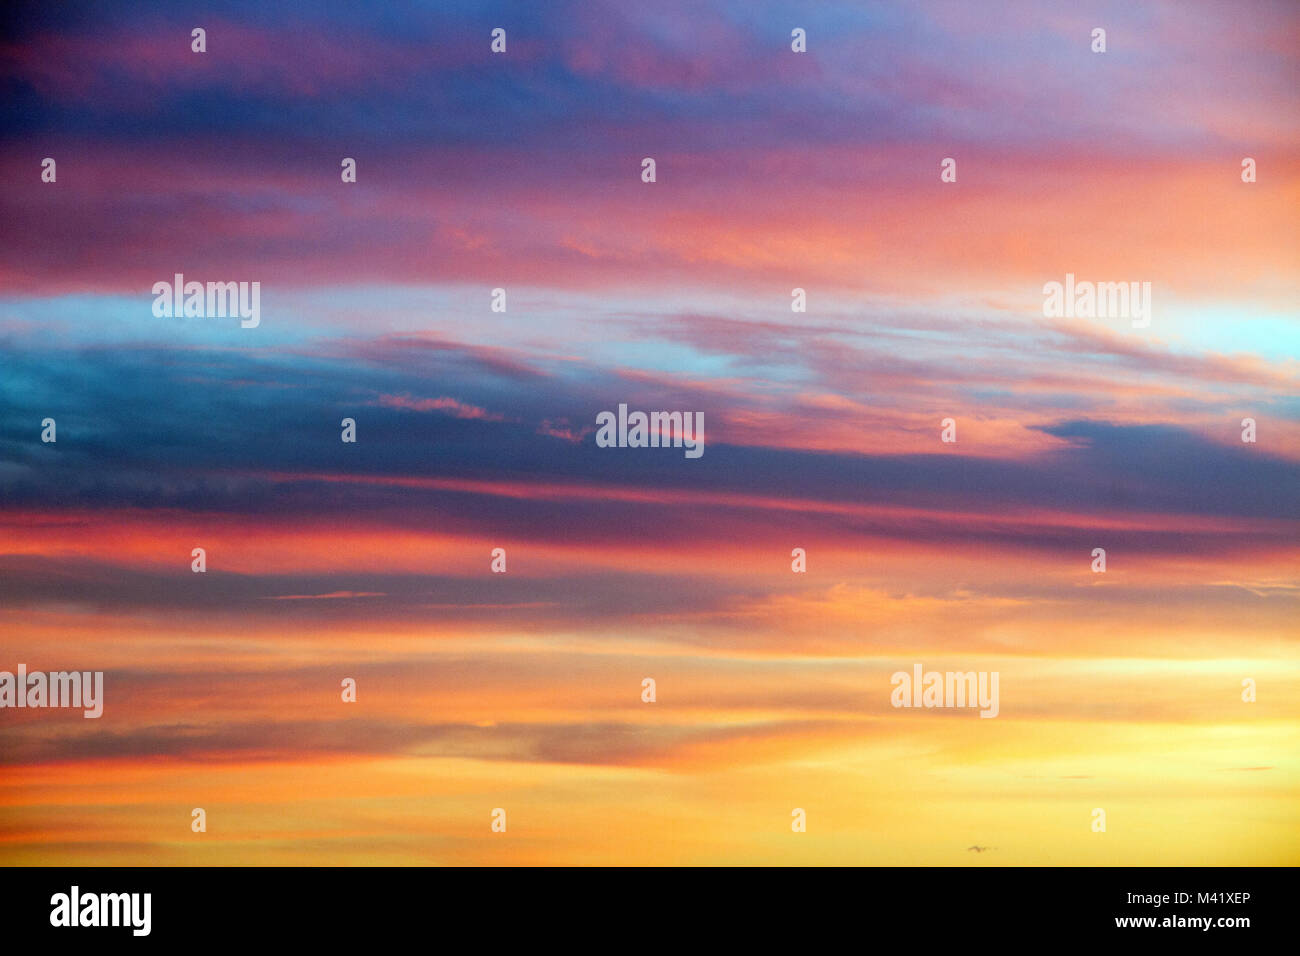 Cloudy sky at sunset Spain, colors background Stock Photo